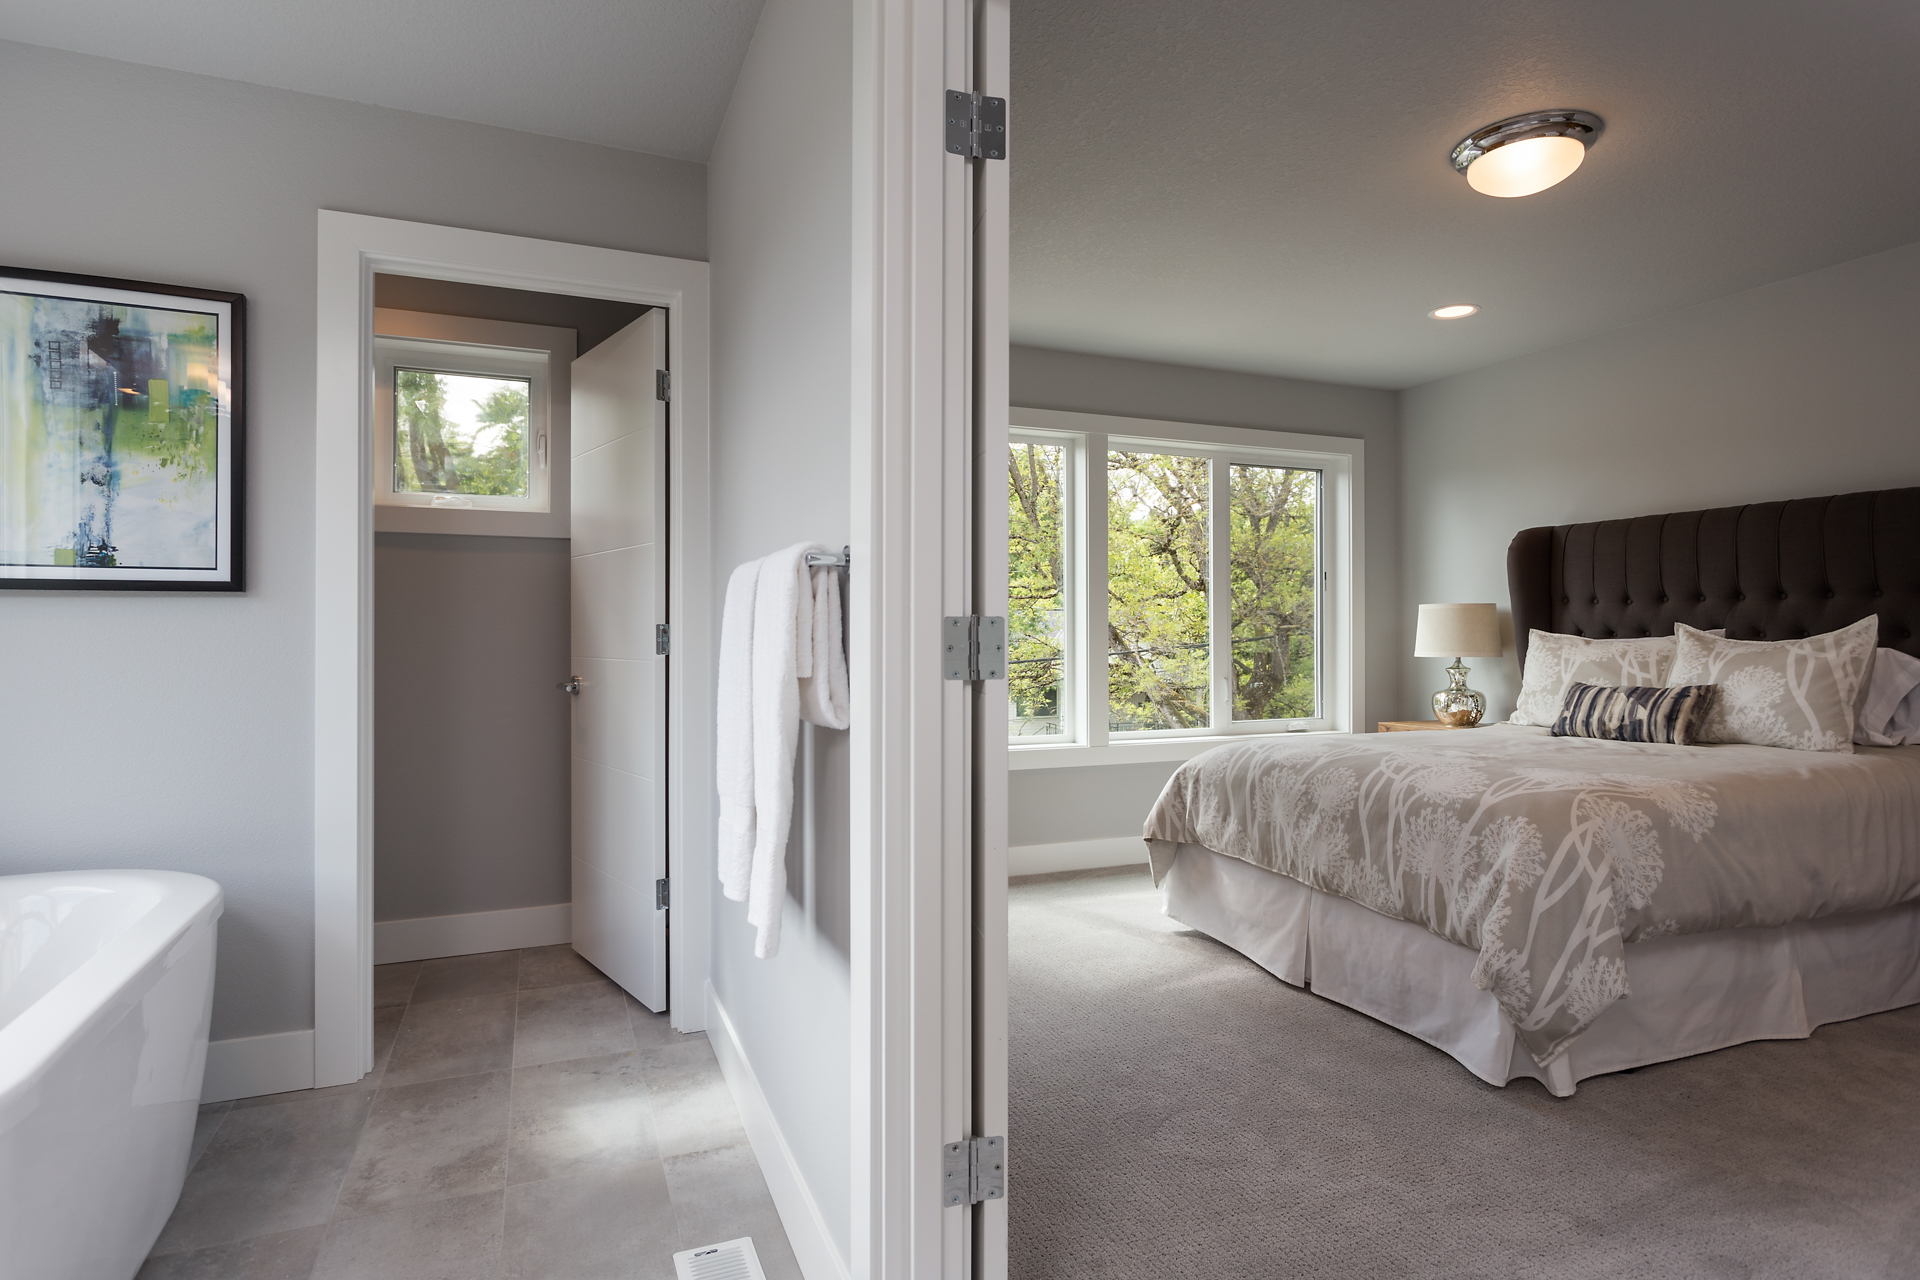 Master suite with large bathroom.